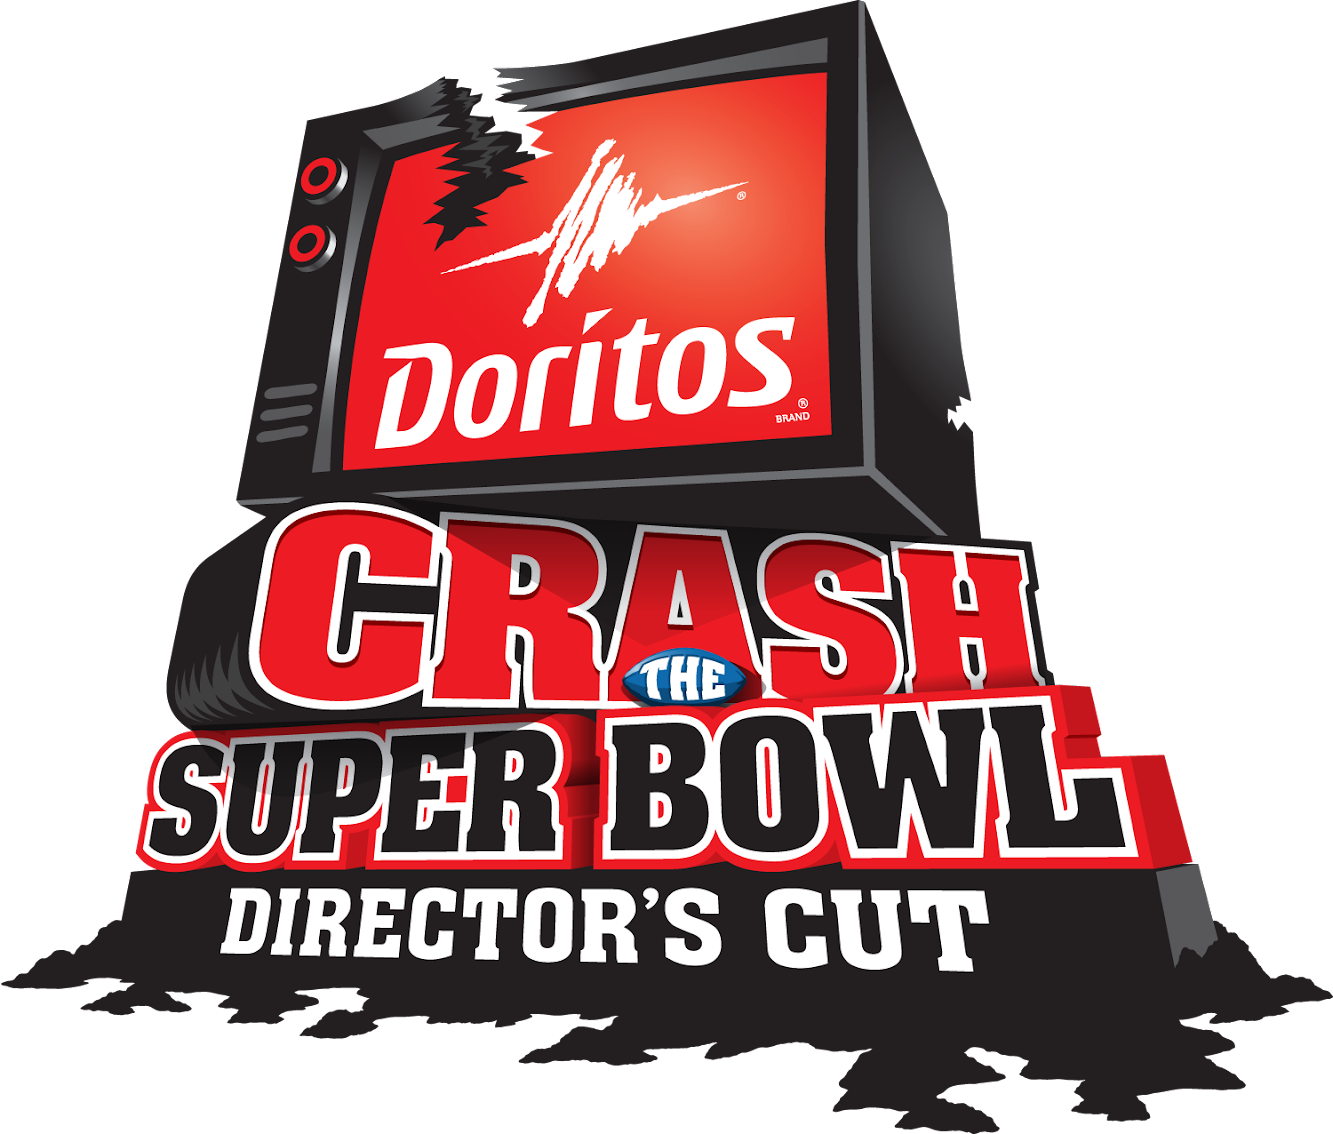 Crash The Super Bowl is Back For 2013 In A Big Way